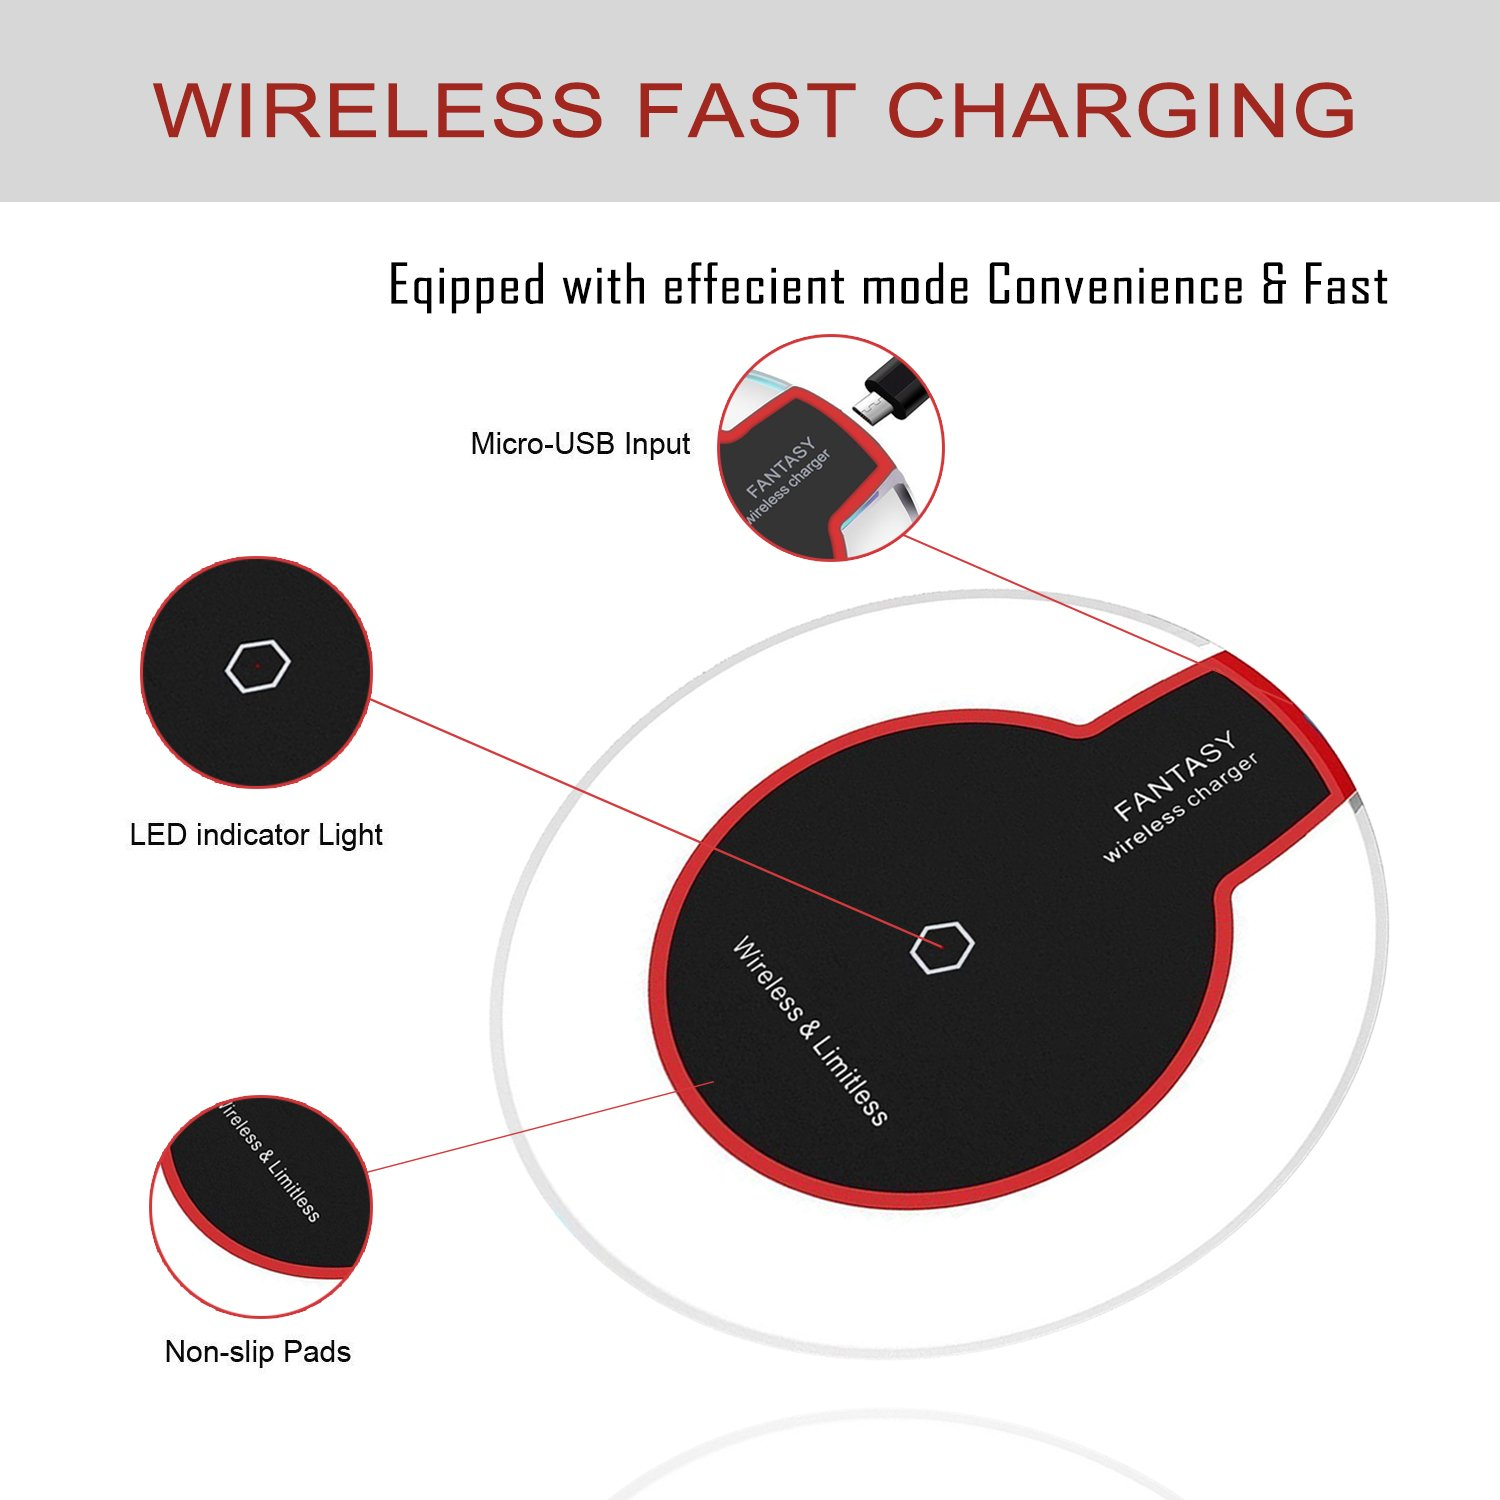 Wewdigi Wireless Charger Charging Ultra Slim Microsoft Surface Wiring Diagram For Iphone X 8 Plus Sleep Friendly With Anti Slip Rubber No Ac